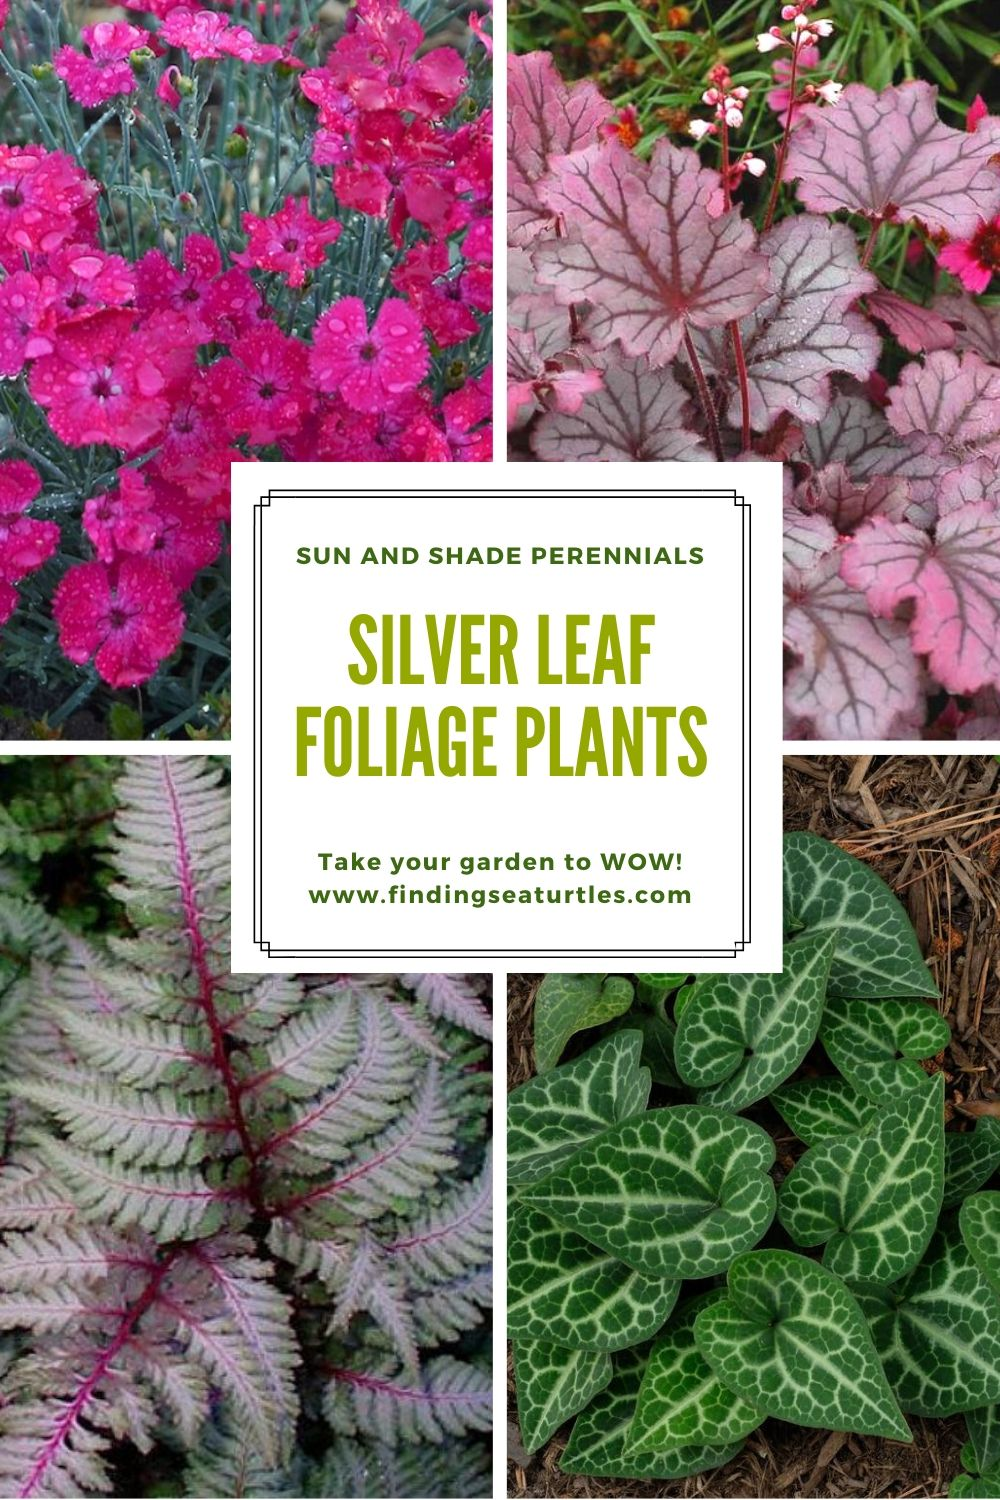 Sun and Shade Perennials SILVER LEAF FOLIAGE PLANTS Take your garden to wow #SilverFoliage #PlantswithSilverLeaves #DramaticFoliagePlants #Gardening #Landscapes #SilverLeafPlants